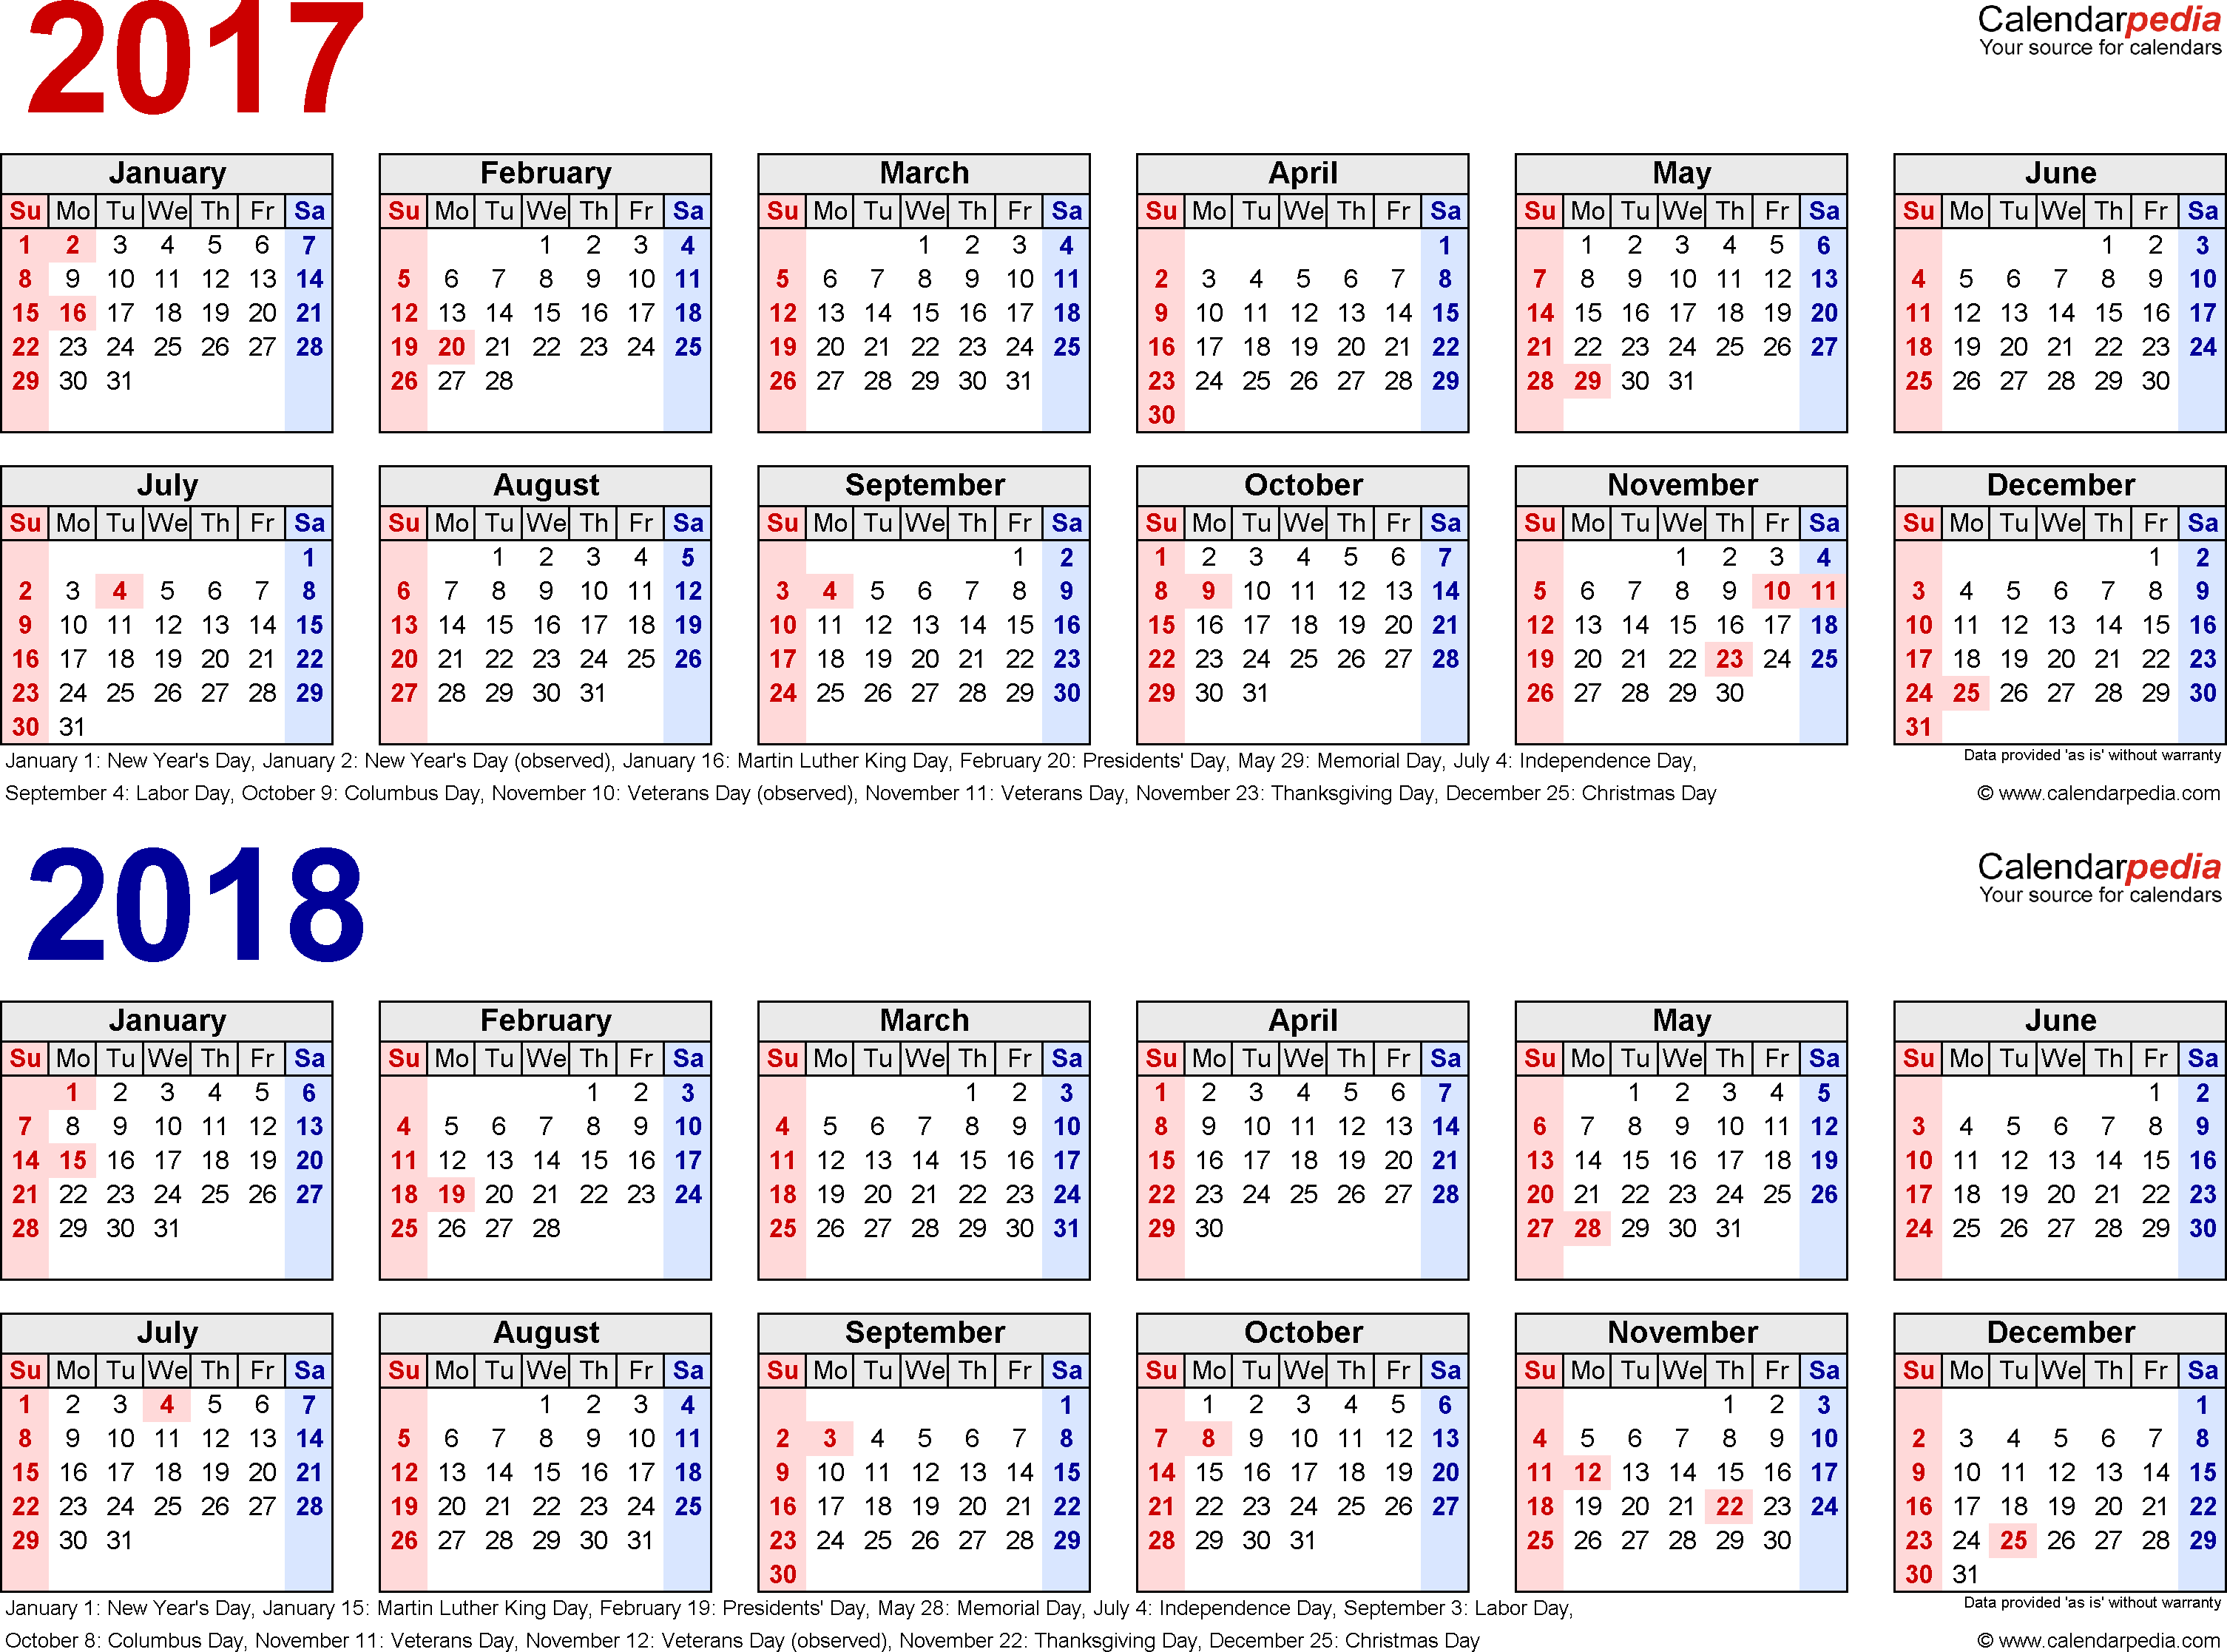 2017-2018 Calendar - free printable two-year Excel calendars